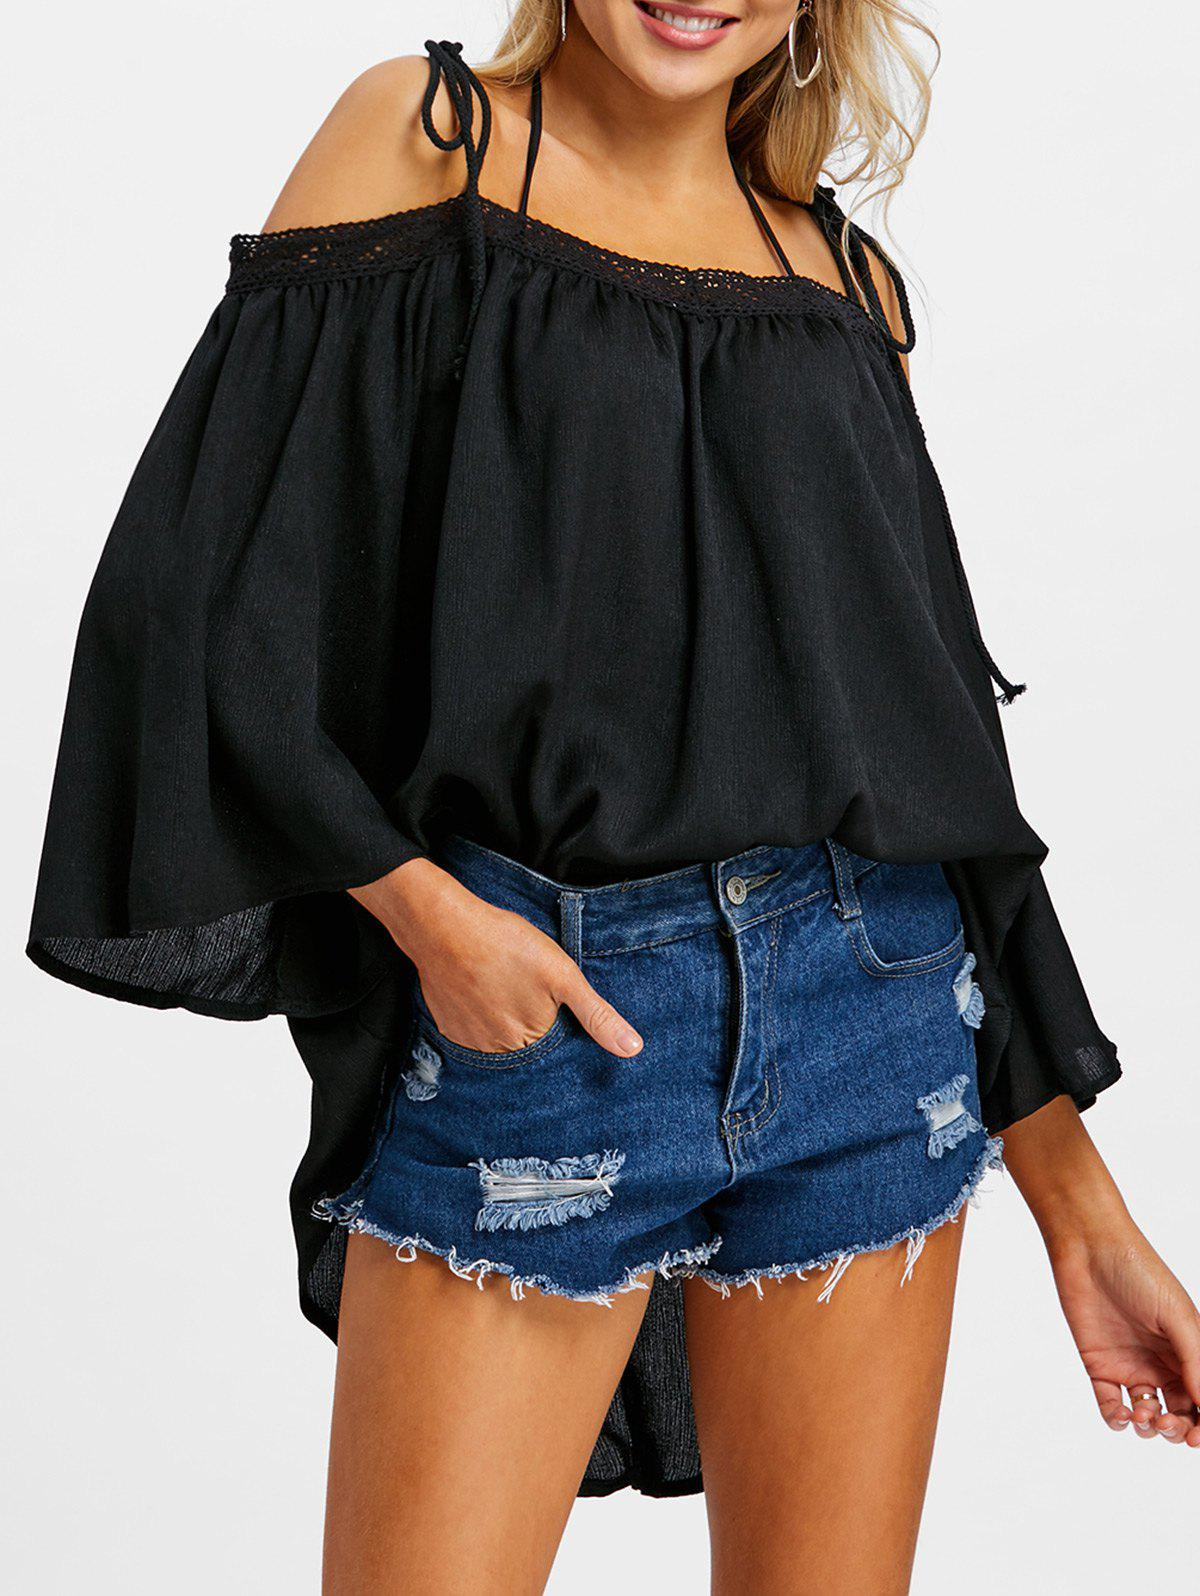 Store Off The Shoulder Cover Up Top